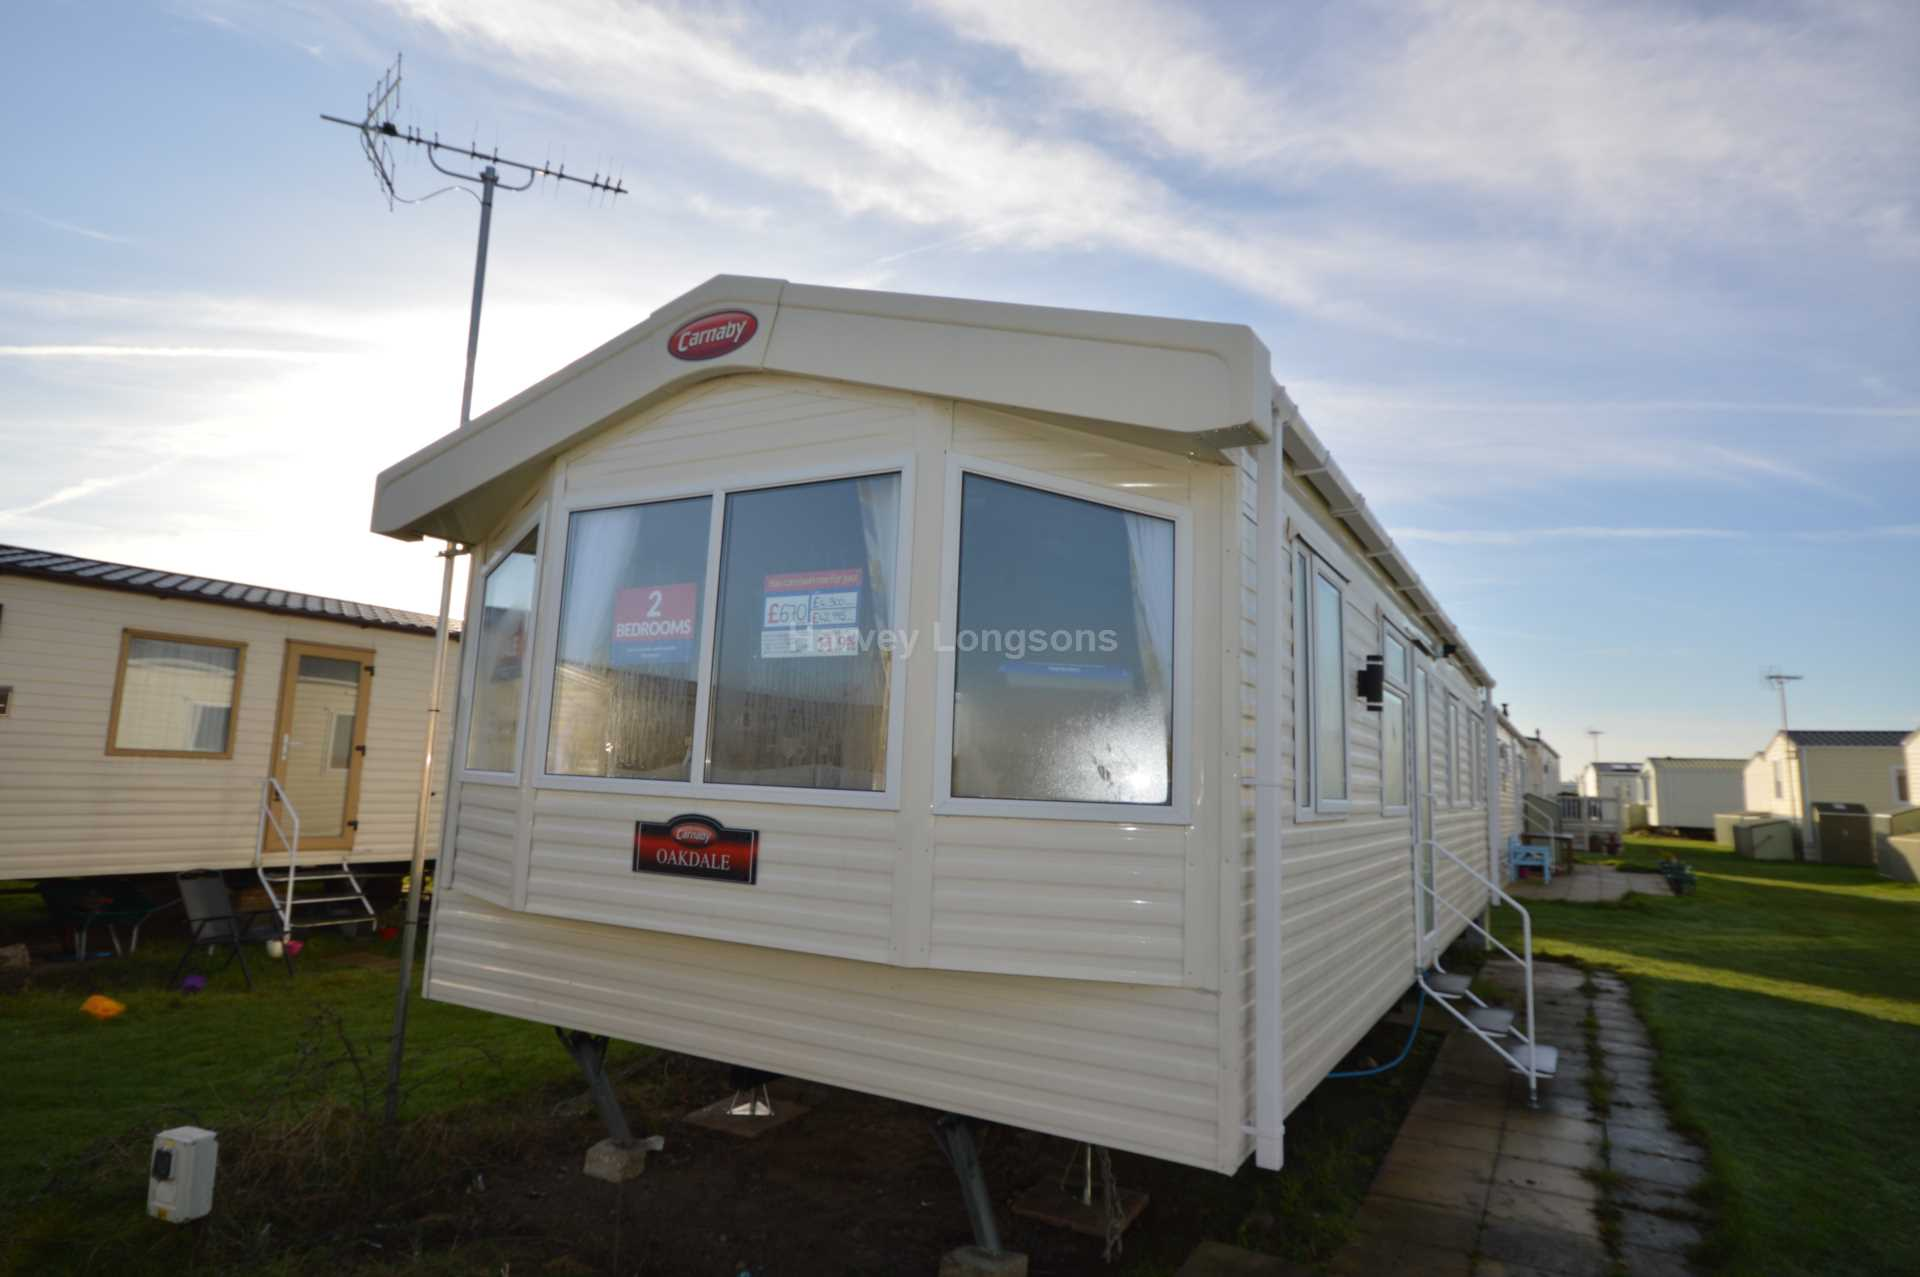 Cool Located In An Idyllic Setting Right By The Beach On The North Kent Coast Just Outside Whitstable With Access To Miles Of Coastal Footpaths Leading To Whitstable And Herne Bay  Or Further If You Want  Its A Great Base To Explore The Kent